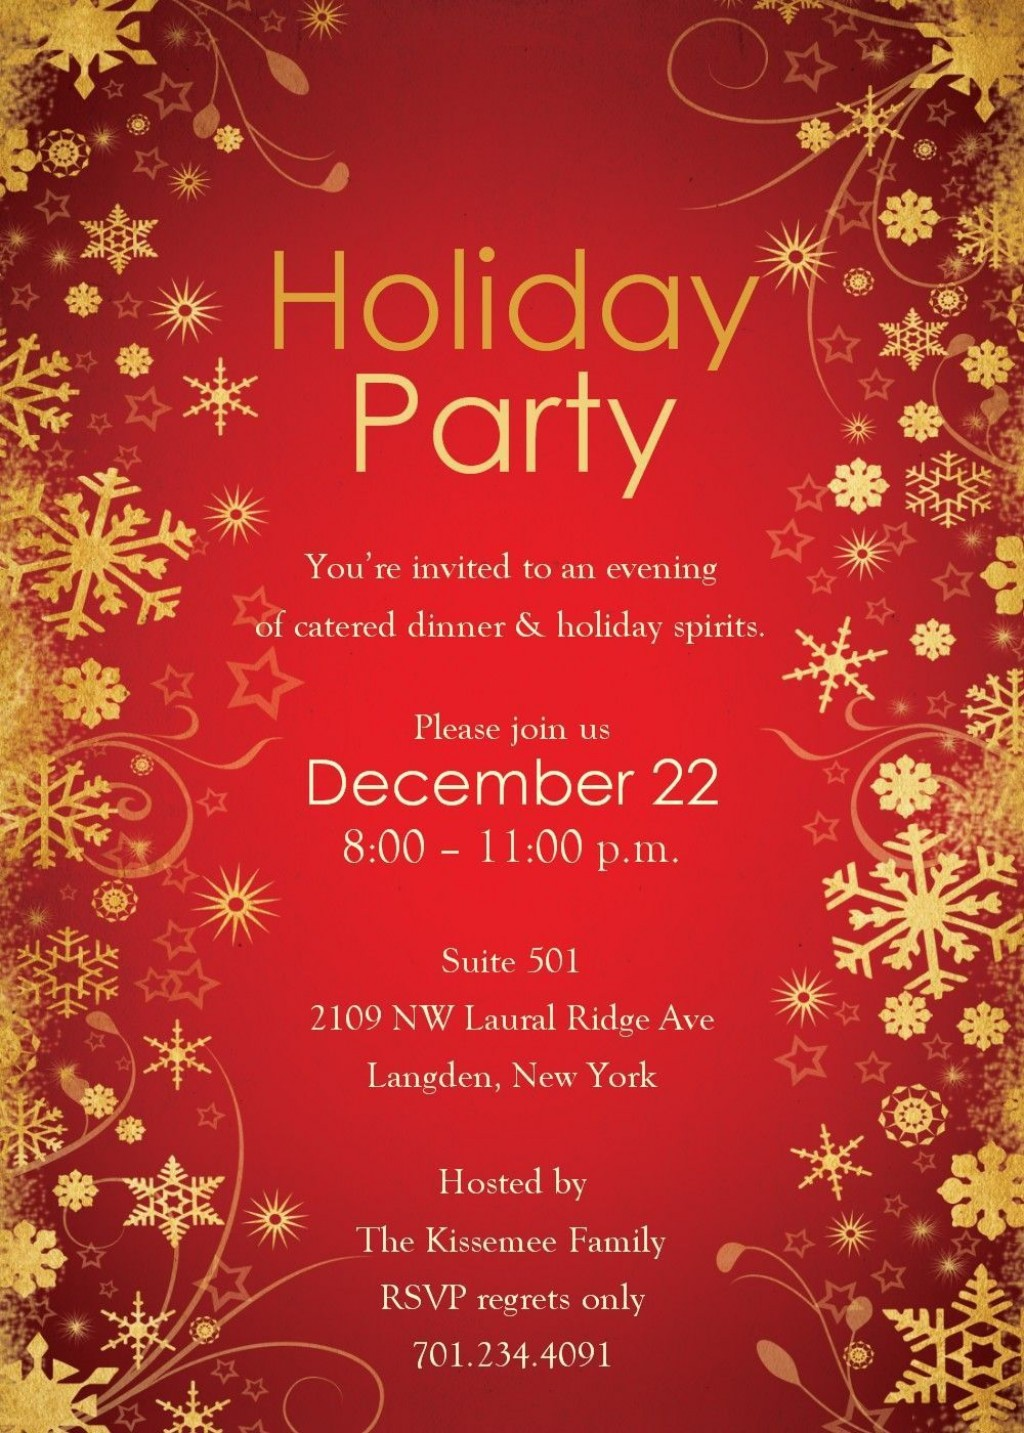 005 Breathtaking Christma Party Invite Template Concept  Microsoft Word Free Download Holiday Invitation PowerpointLarge